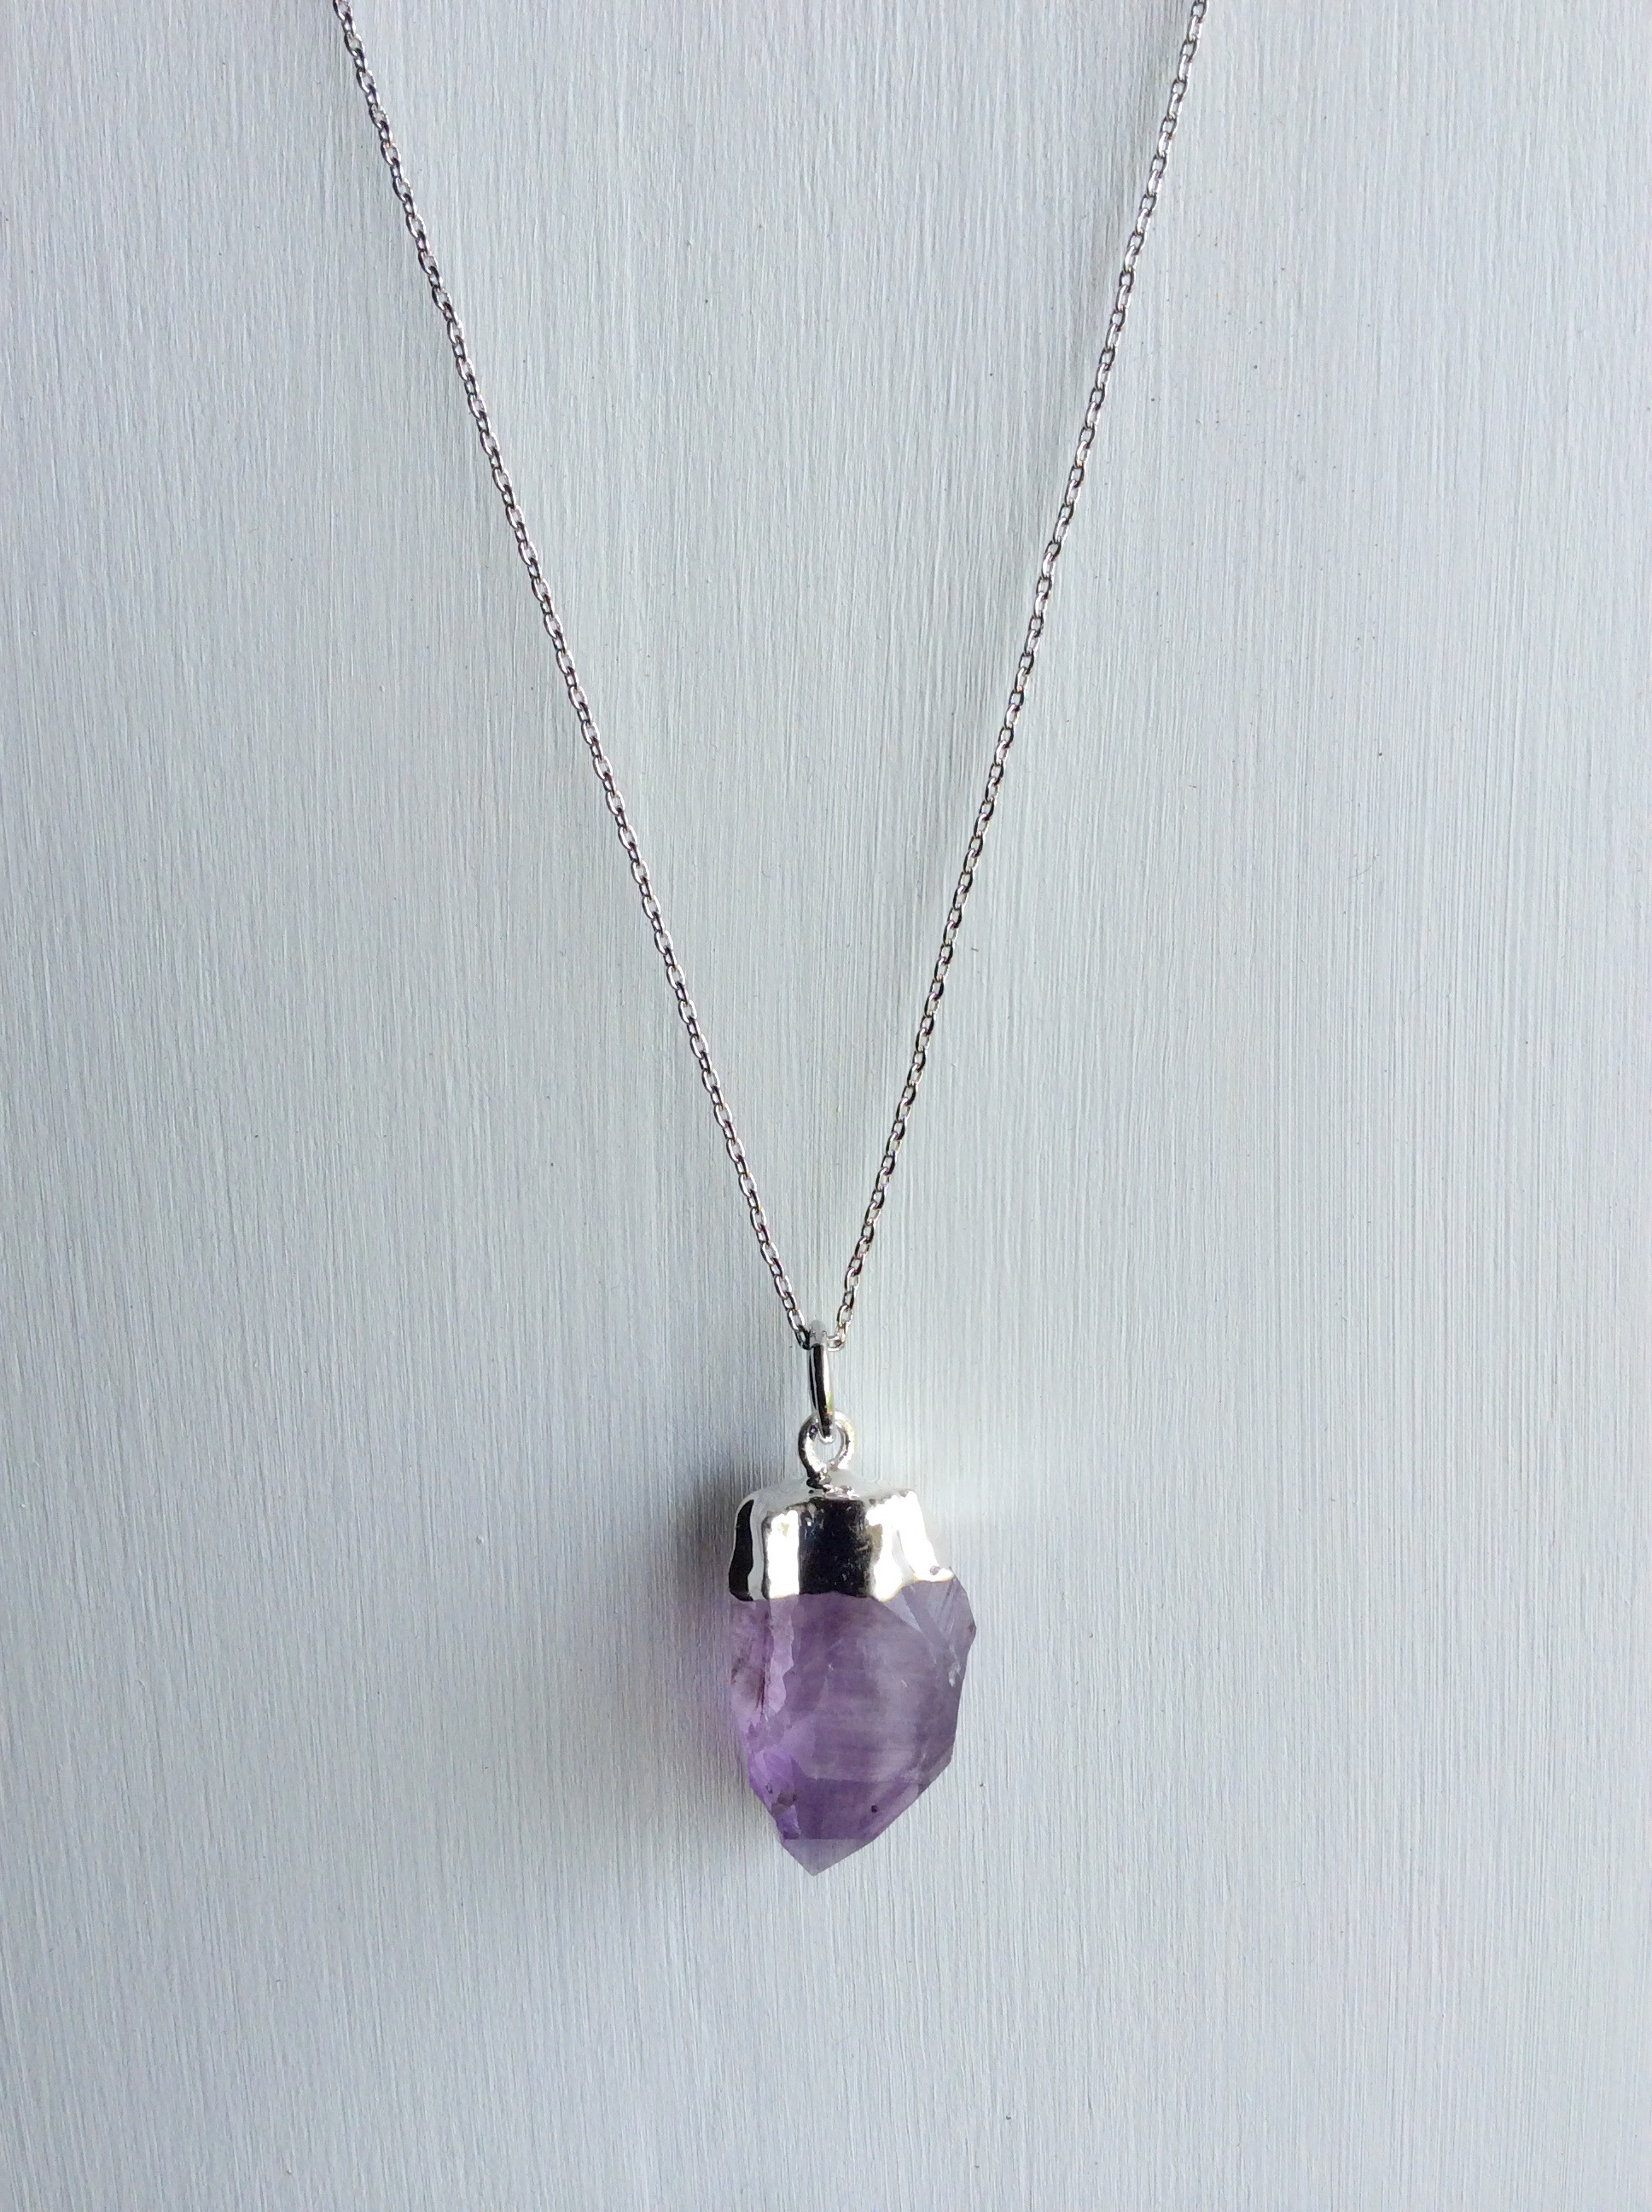 luccichio en pendant jewellery shop vintouch amethyst necklace